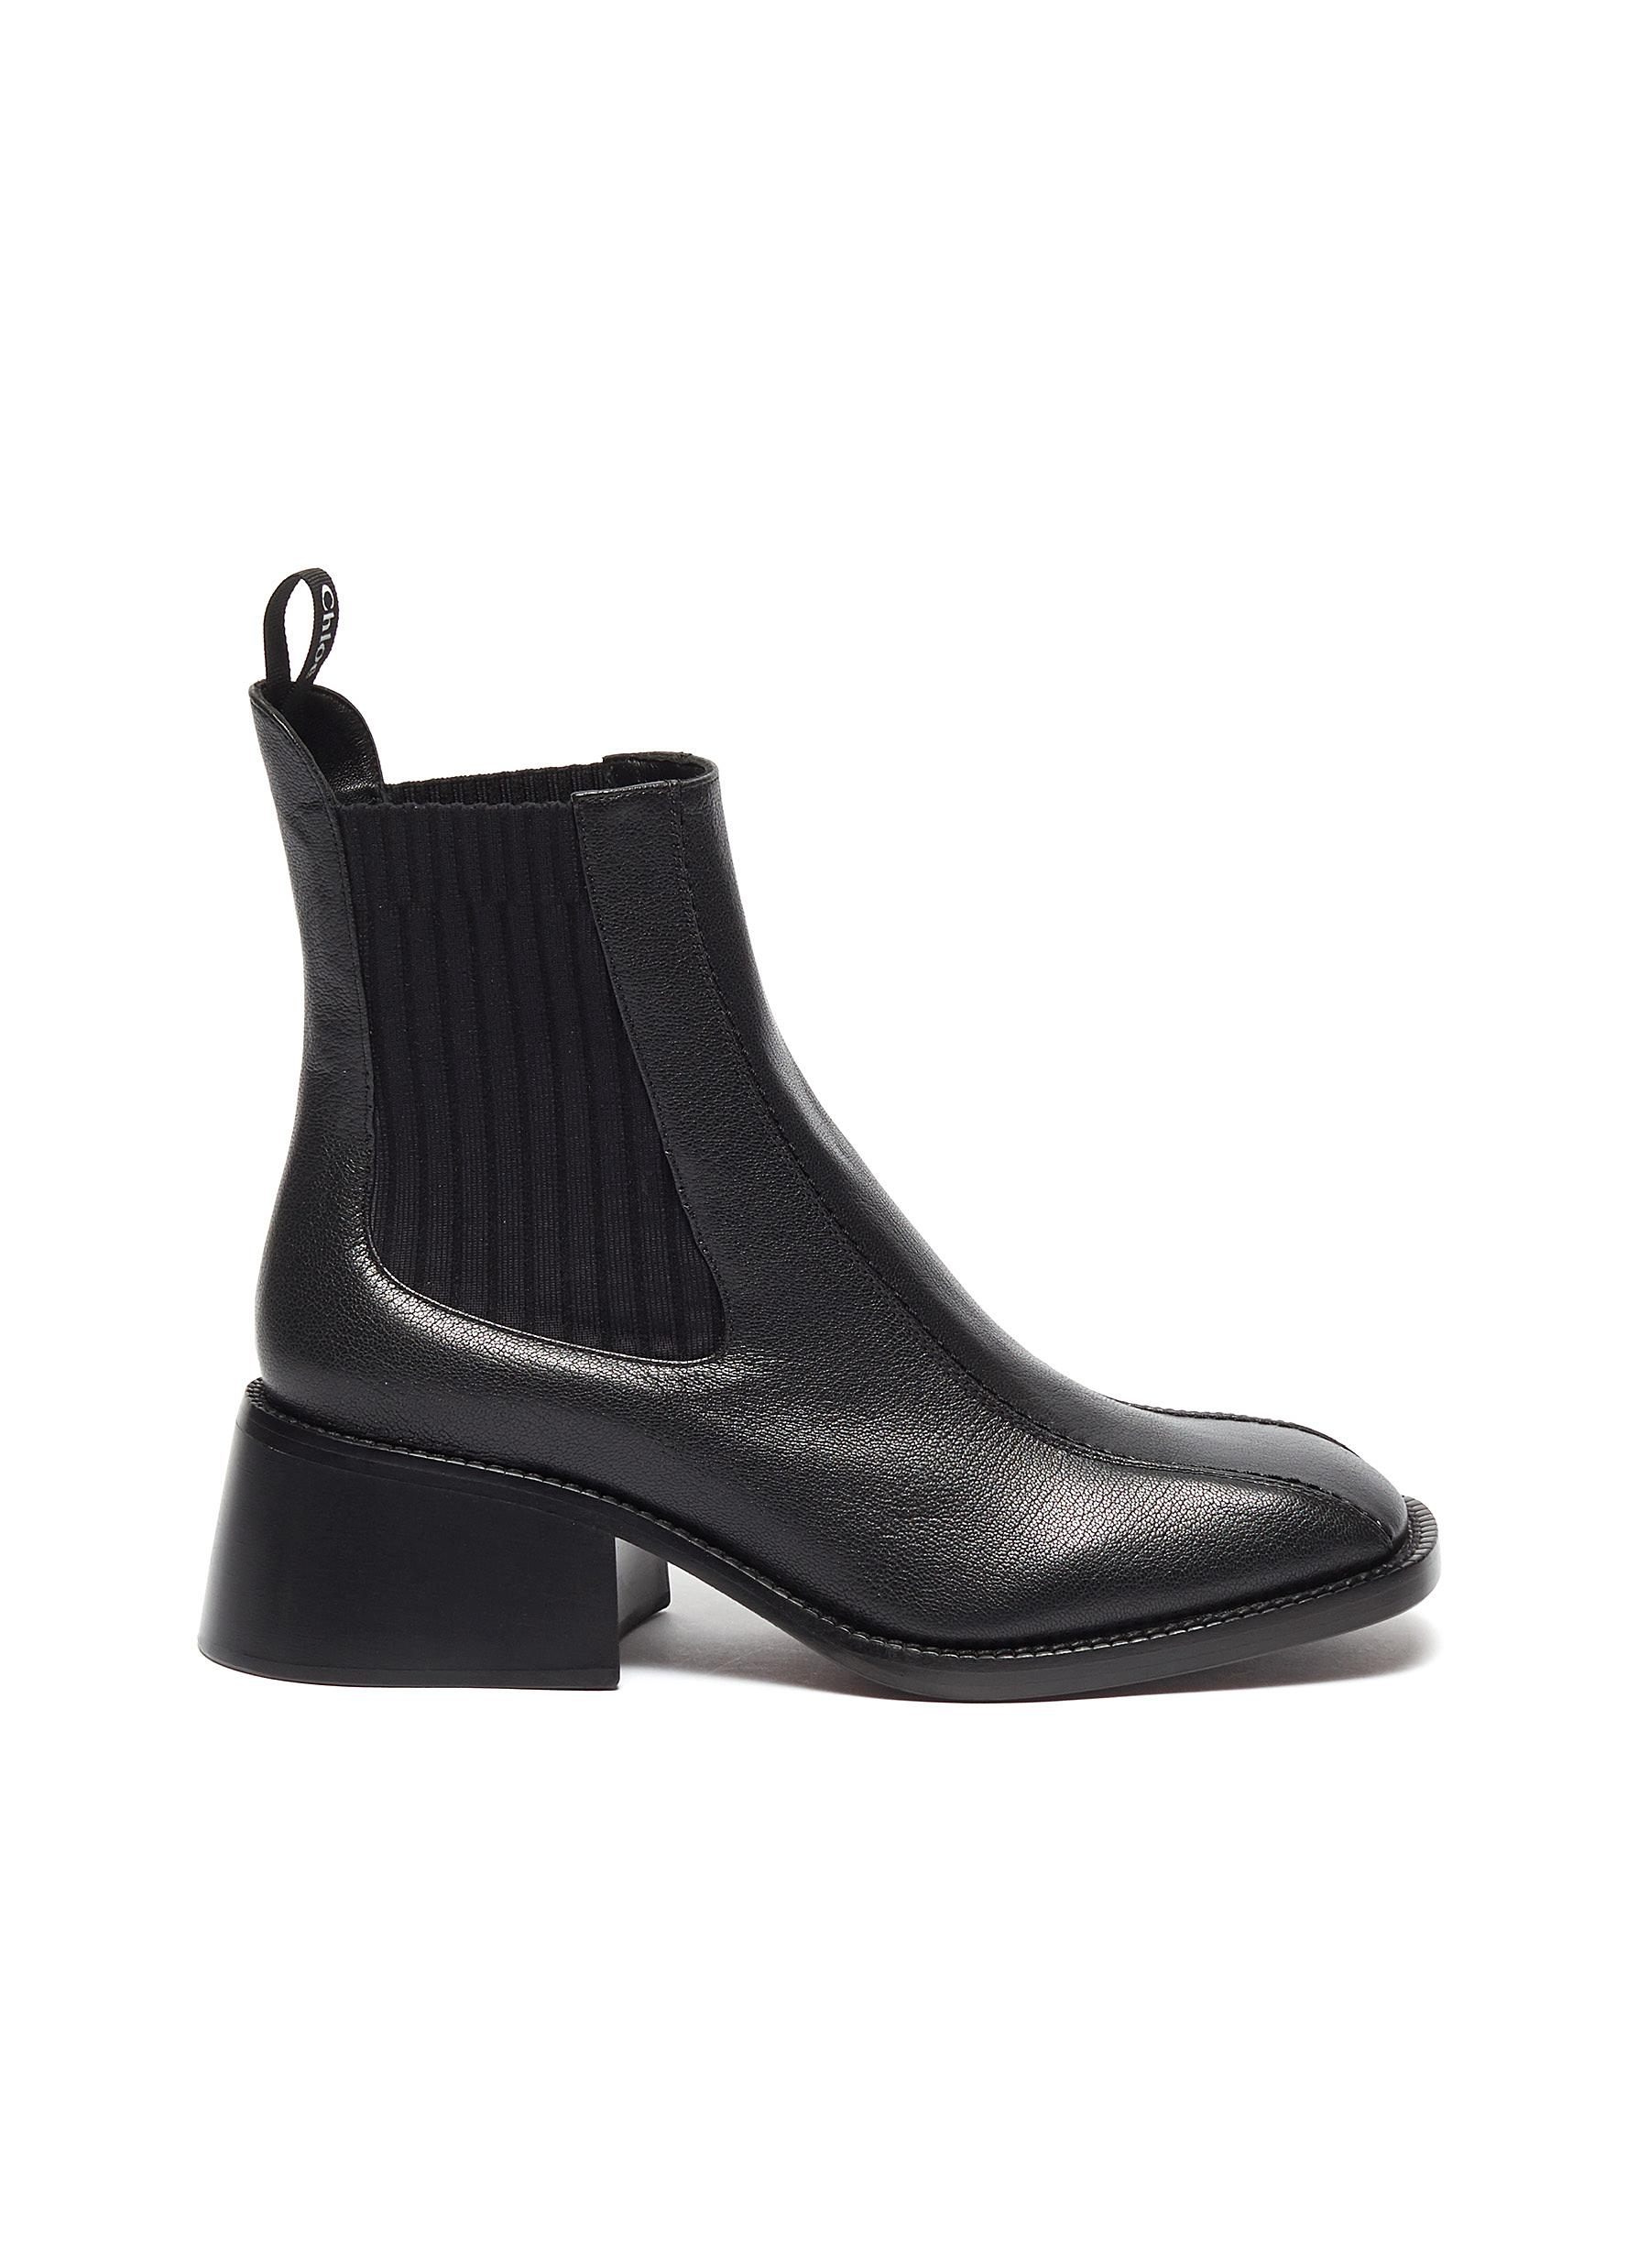 Bea leather Chelsea boots by Chloé